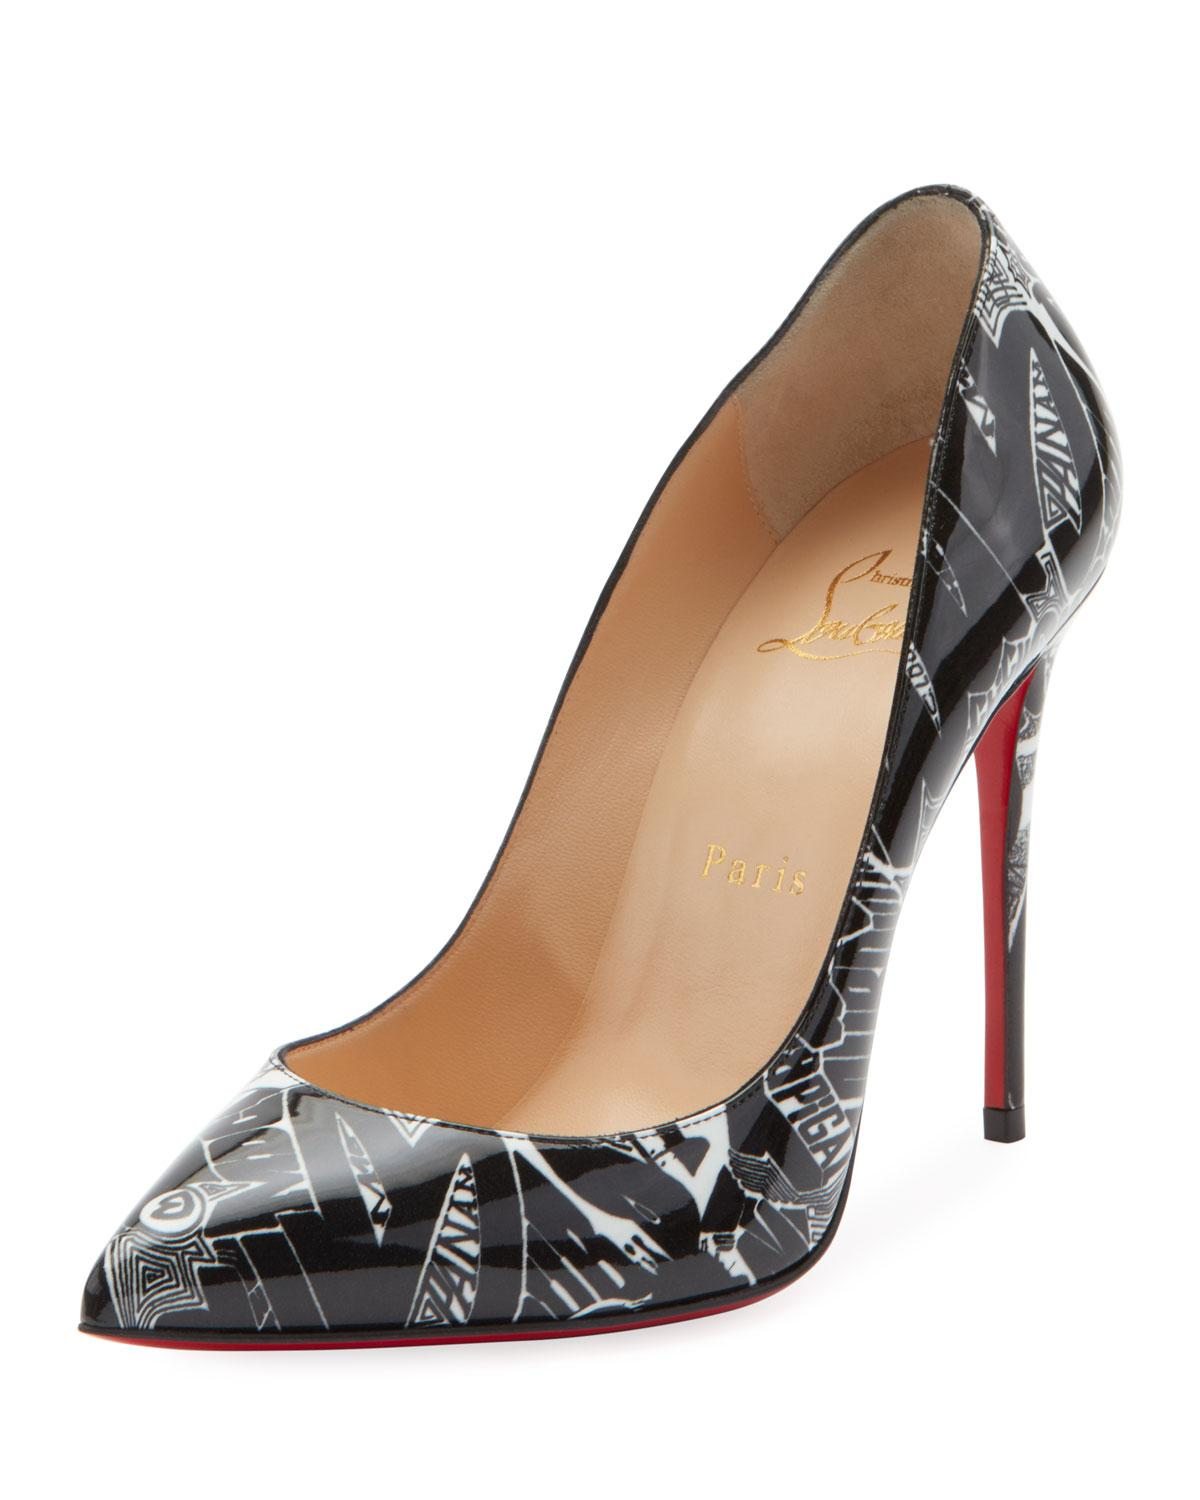 40212400961b Christian Louboutin. Women s Black Pigalle Follies 100mm Patent Nicograf  Red Sole Pumps